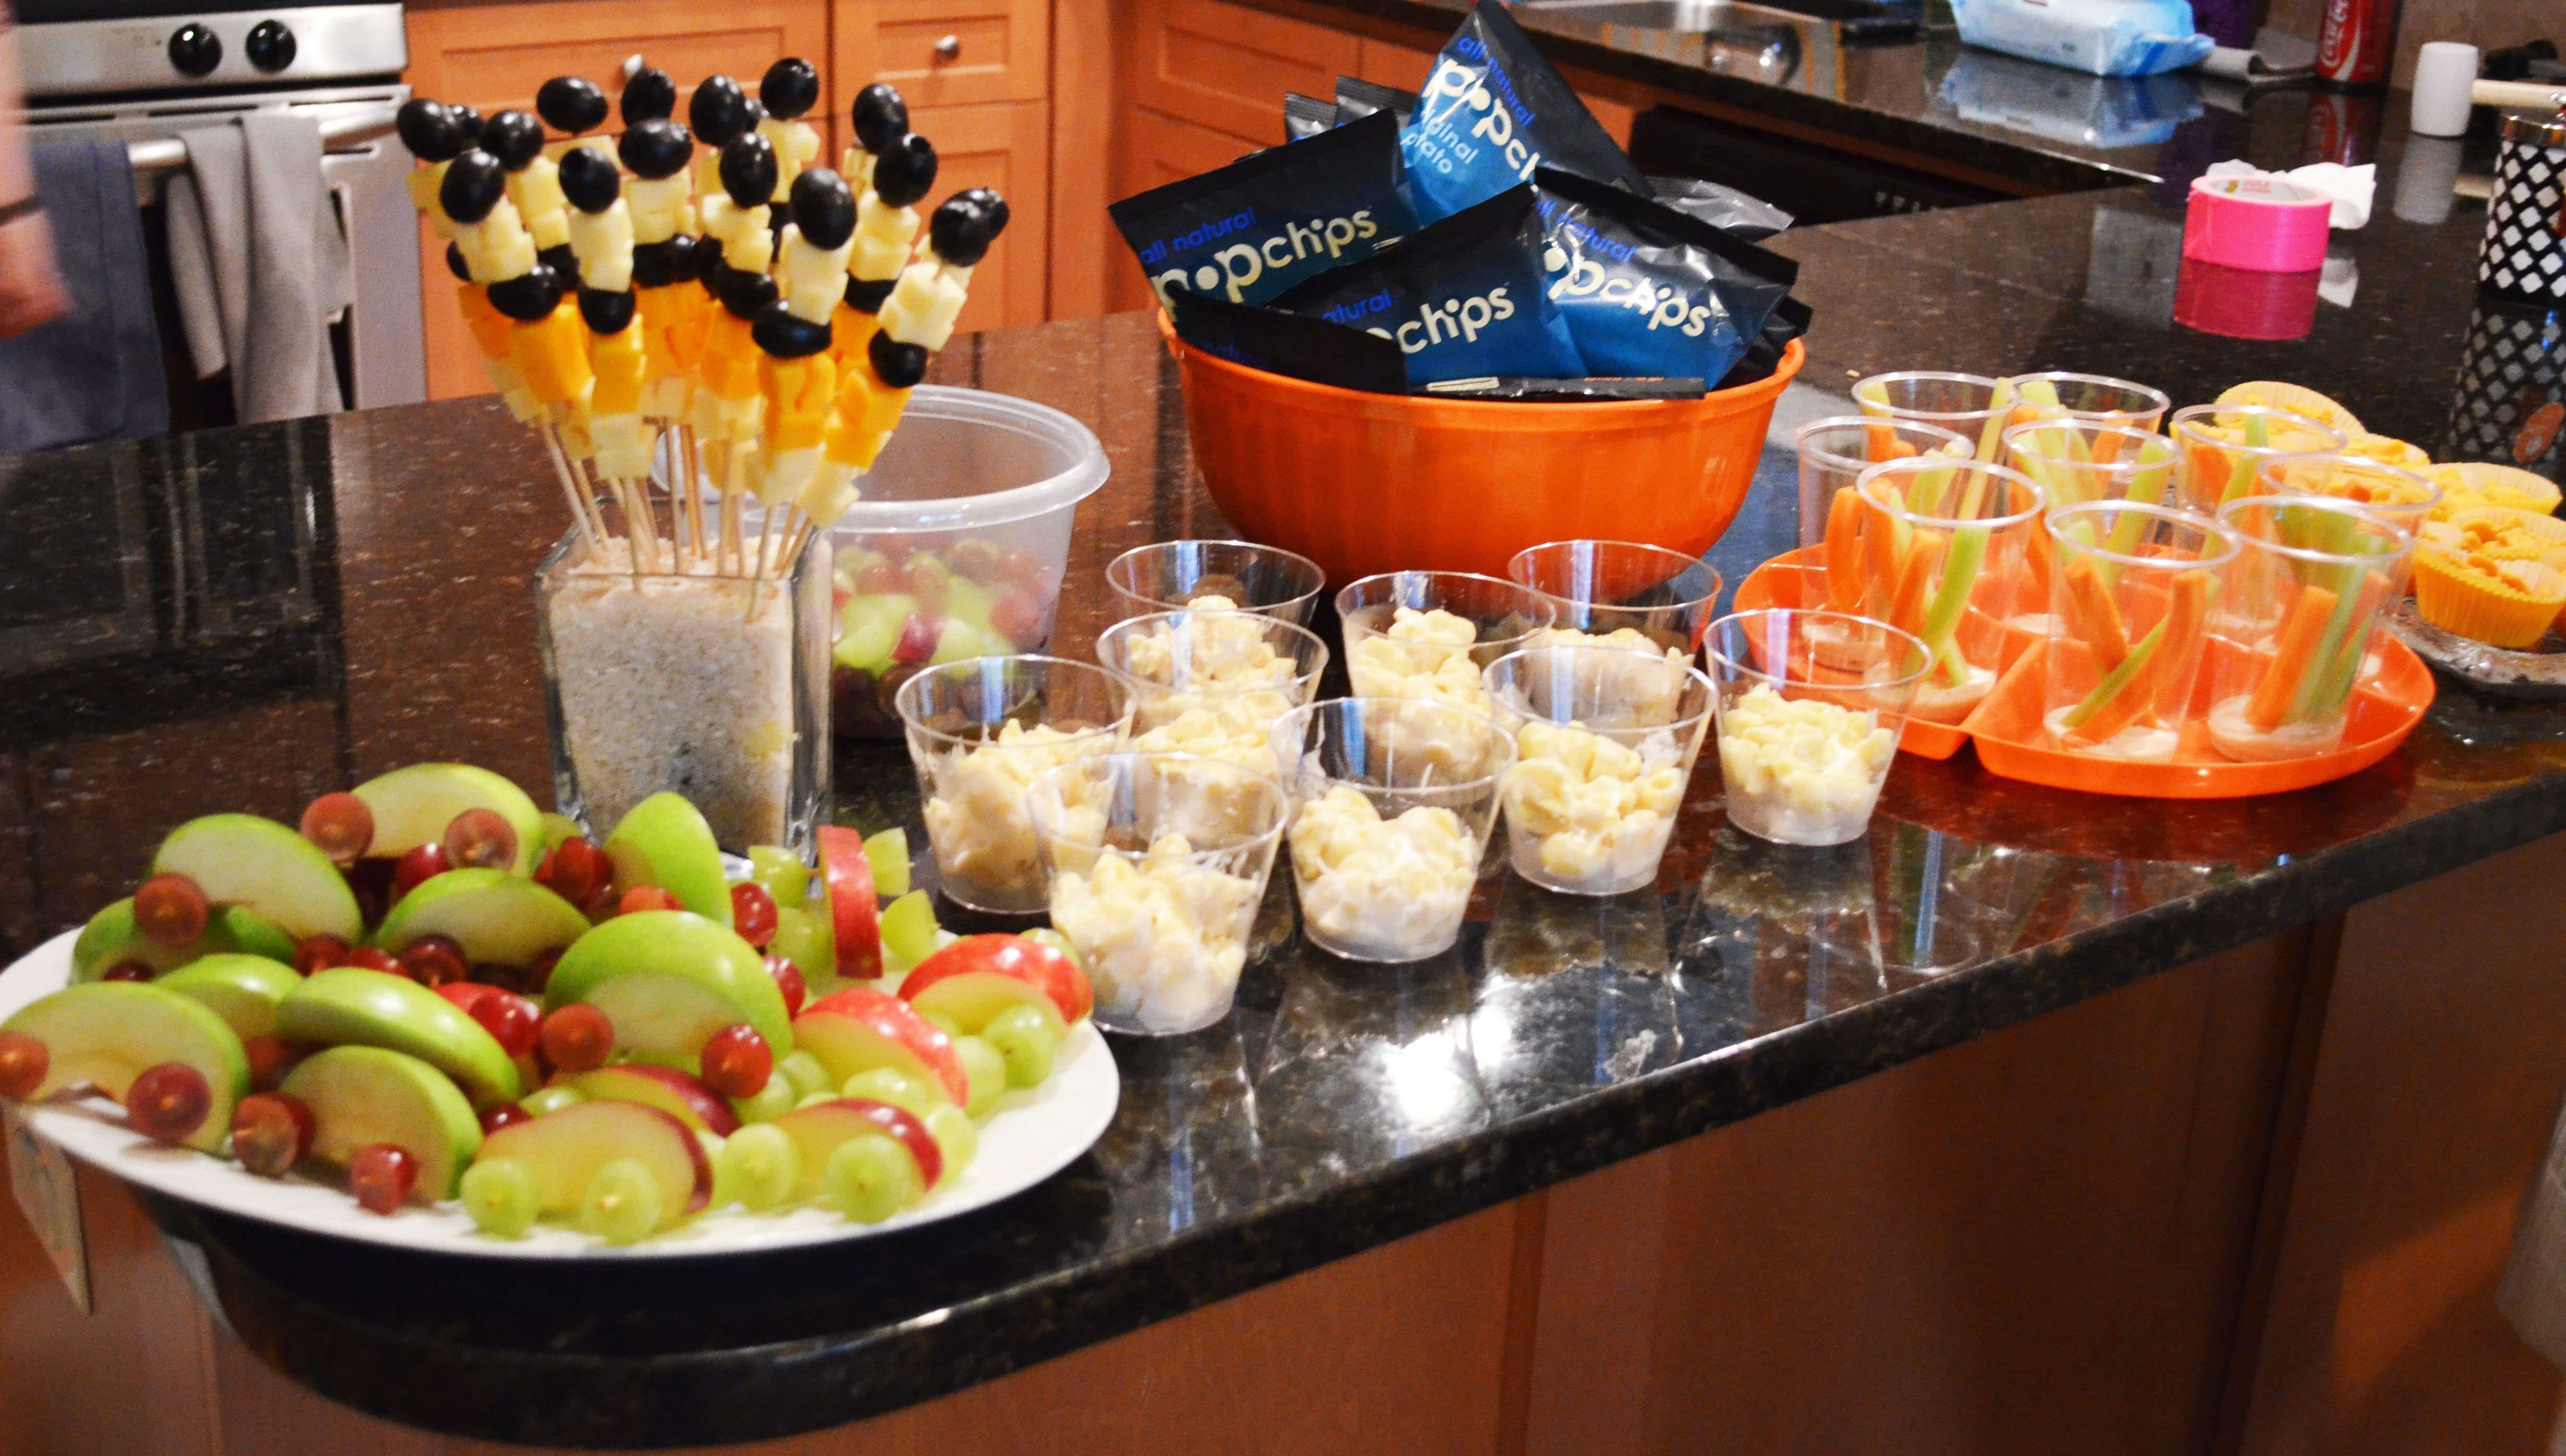 10 Lovely Food Ideas For A Birthday Party a how to construction truck birthday party birthdays 10 2021